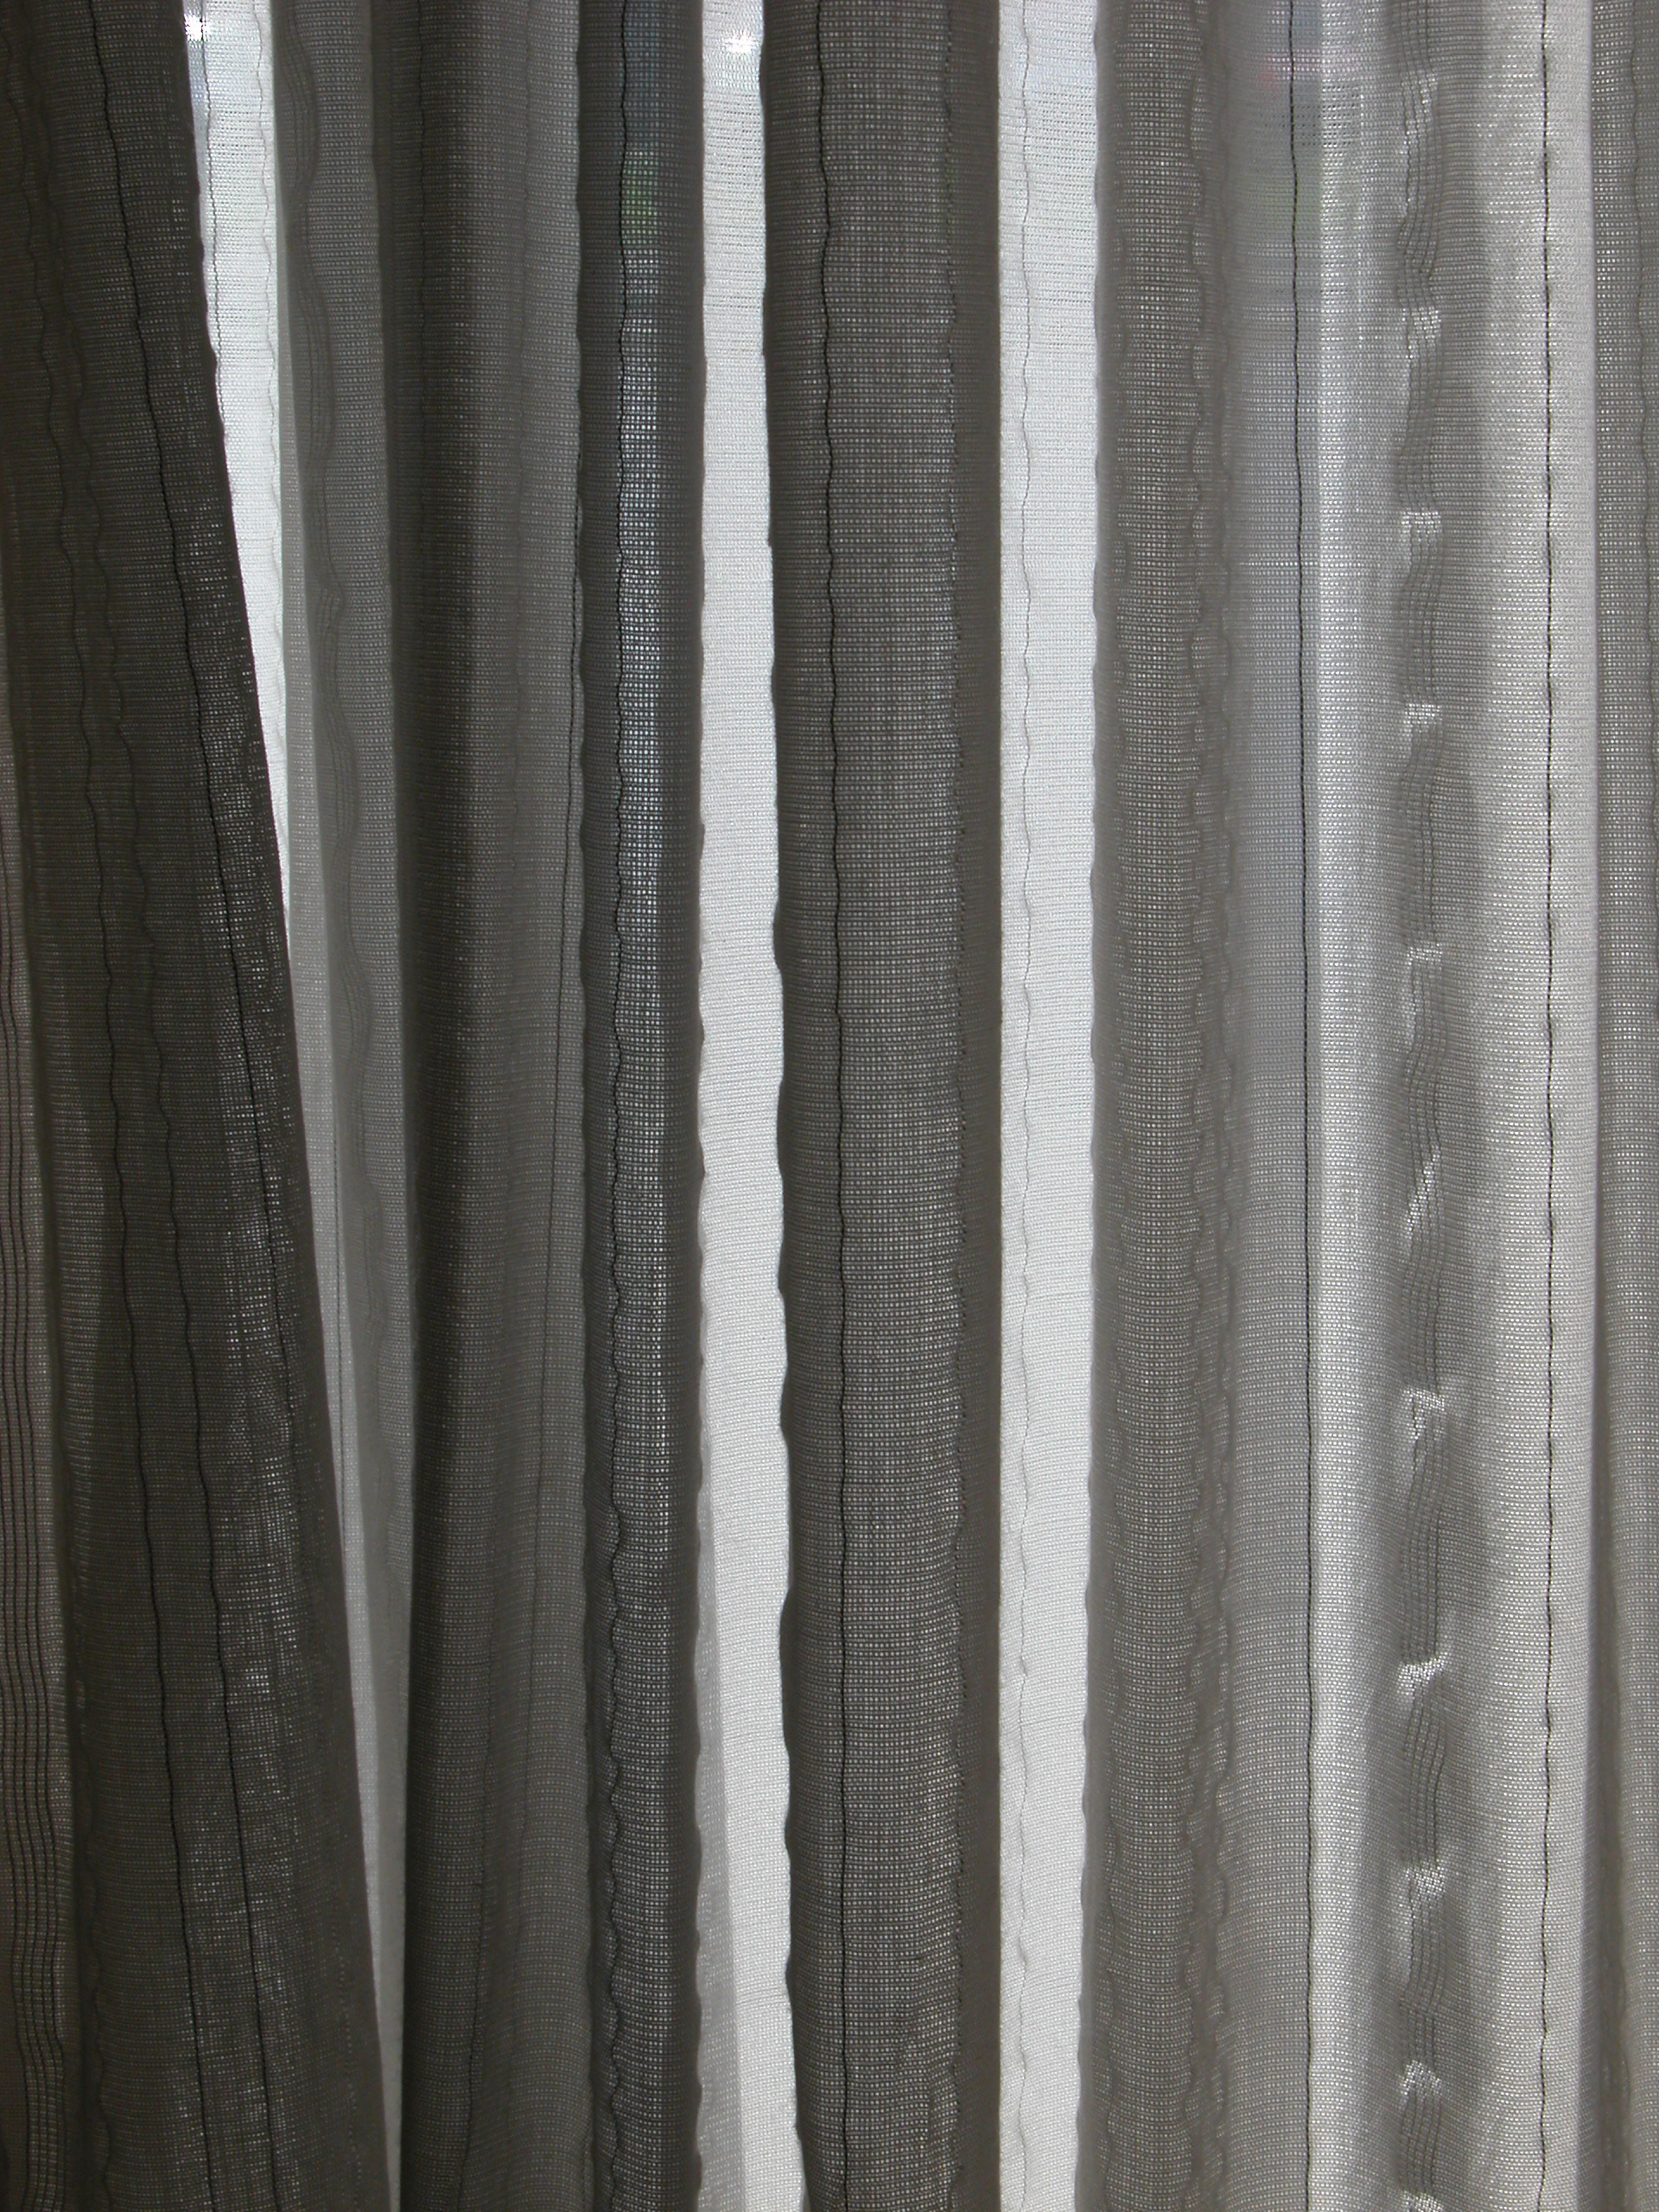 Curtains texture - Terms